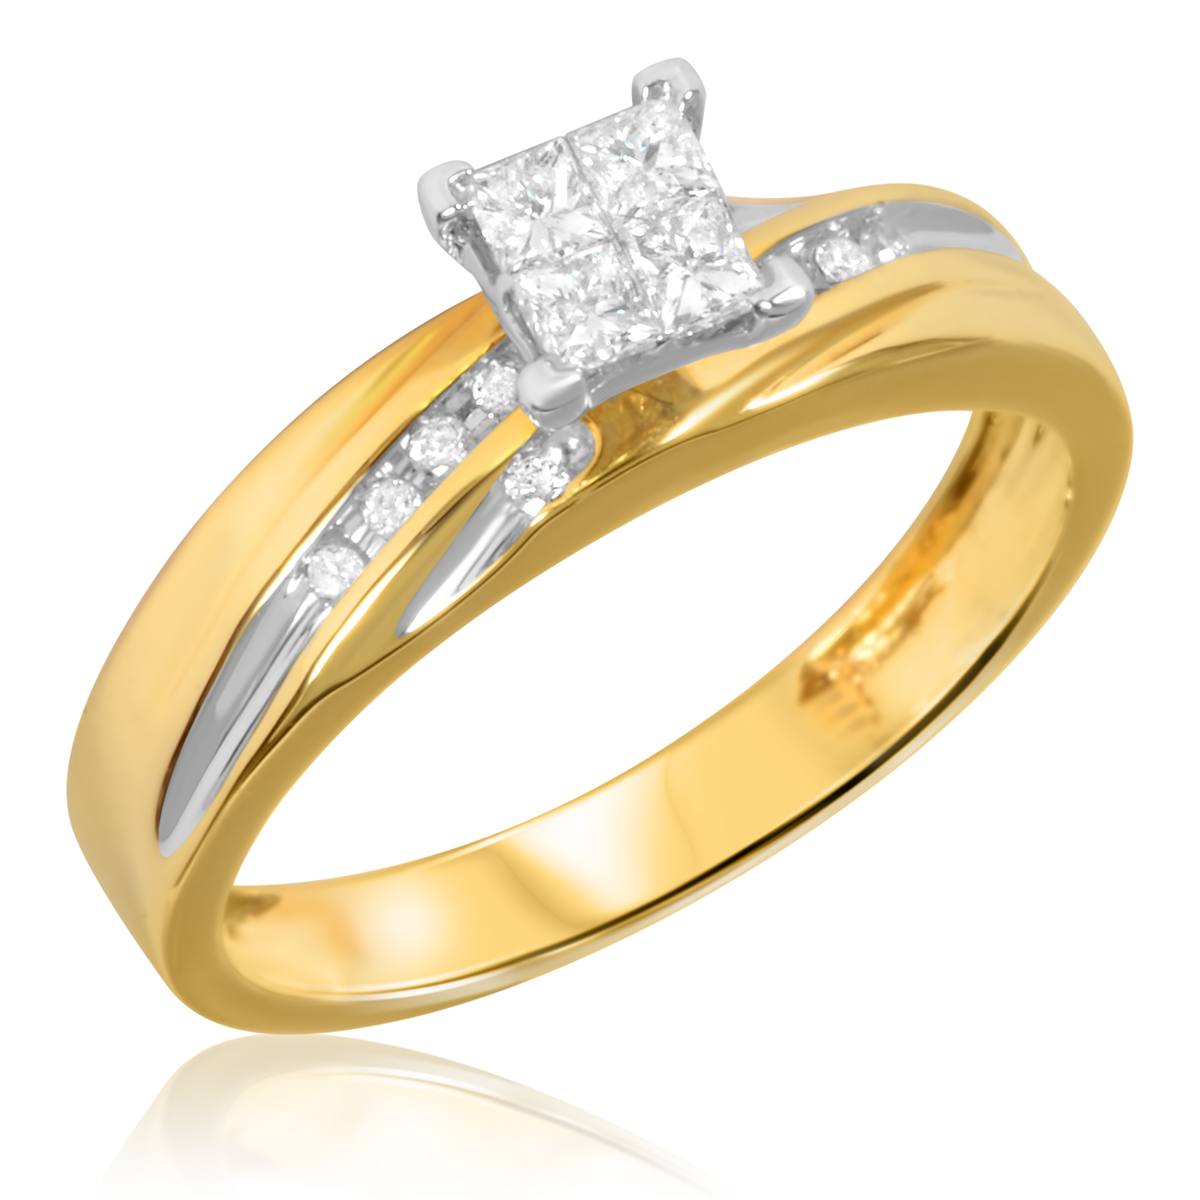 1 2 Carat TW Diamond Trio Matching Wedding Ring Set 14K Yellow Gold